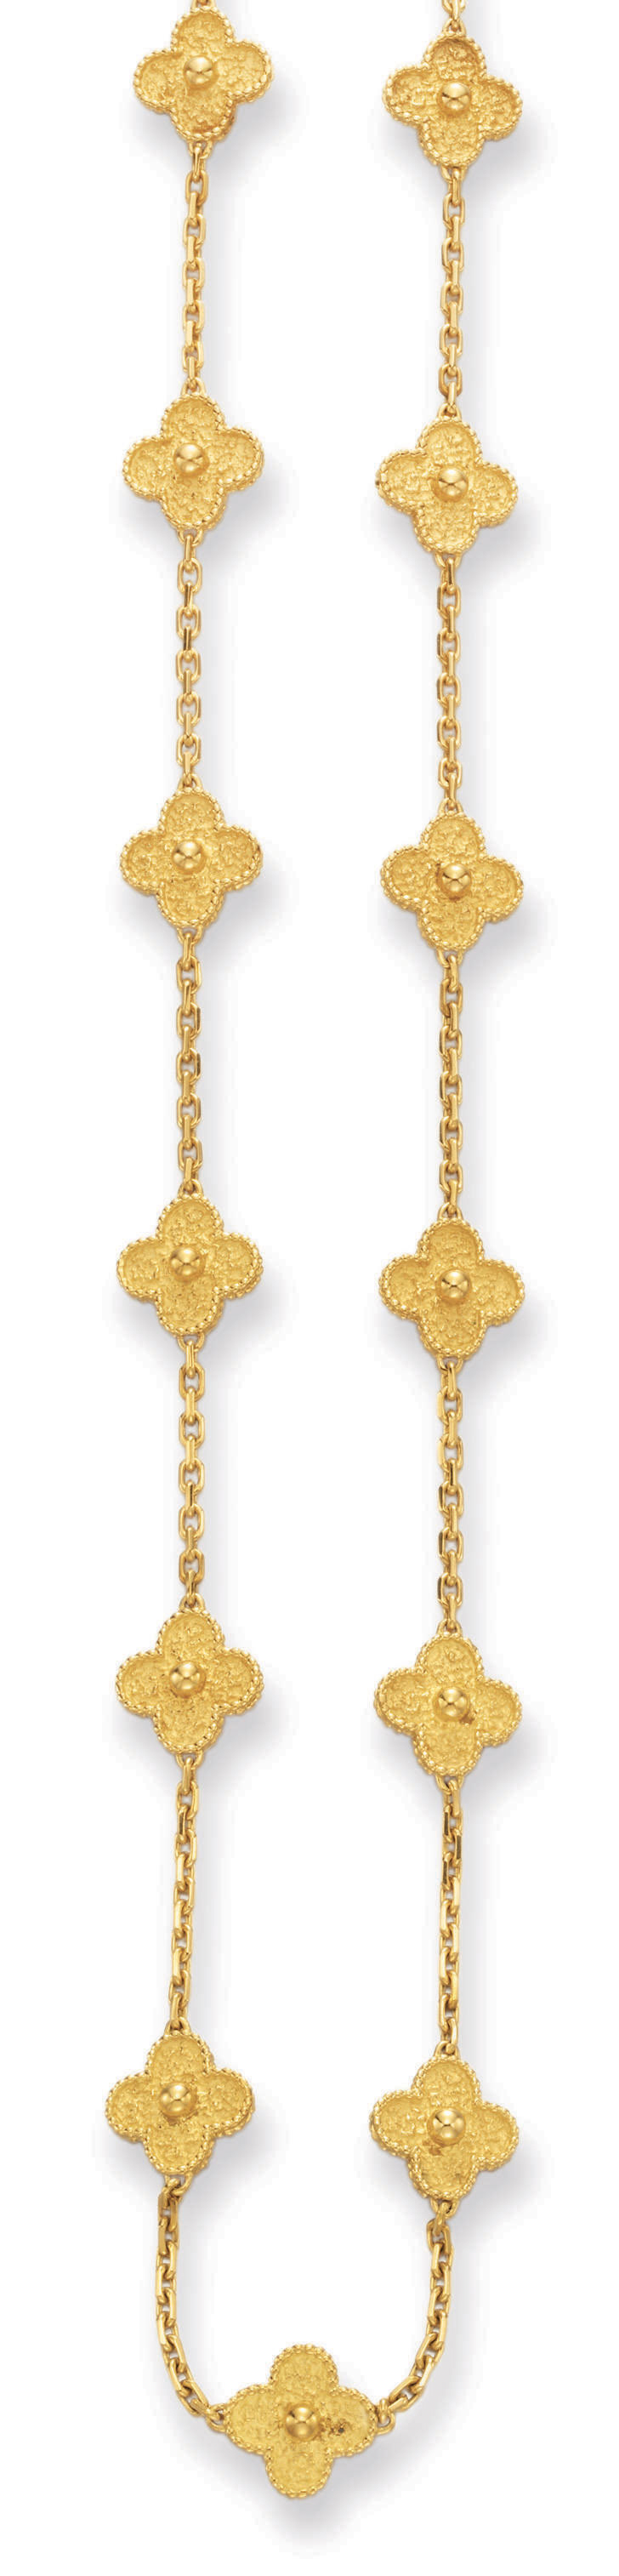 """A GOLD """"ALHAMBRA"""" NECKLACE, BY VAN CLEEF & ARPELS"""